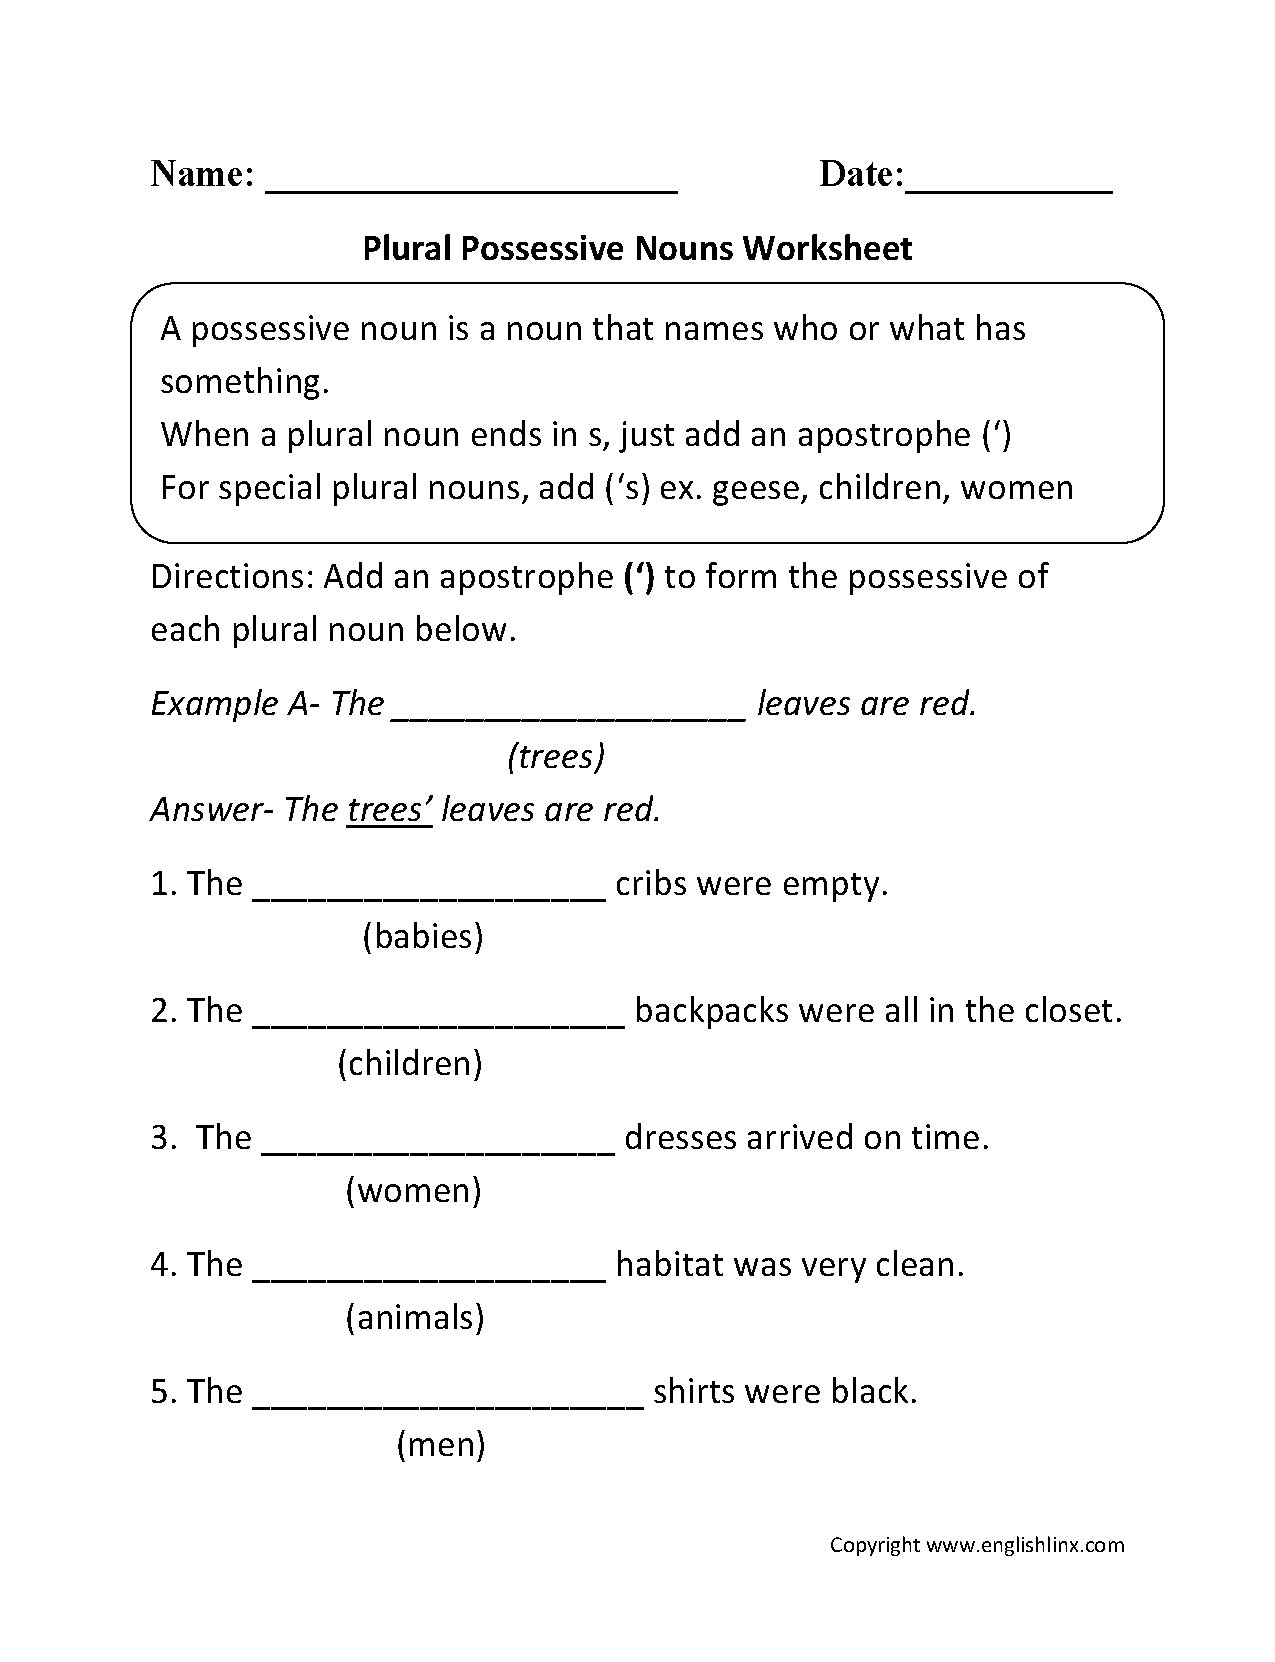 Aldiablosus  Scenic Nouns Worksheets  Possessive Nouns Worksheets With Inspiring Possessive Nouns Worksheets With Cool Handwriting Worksheets Letters Also Light And Shadows Worksheets In Addition Worksheet Online And Year Seven Maths Worksheets As Well As Synonyms Worksheets For Grade  Additionally Surface Area And Volume Worksheets Grade  From Englishlinxcom With Aldiablosus  Inspiring Nouns Worksheets  Possessive Nouns Worksheets With Cool Possessive Nouns Worksheets And Scenic Handwriting Worksheets Letters Also Light And Shadows Worksheets In Addition Worksheet Online From Englishlinxcom